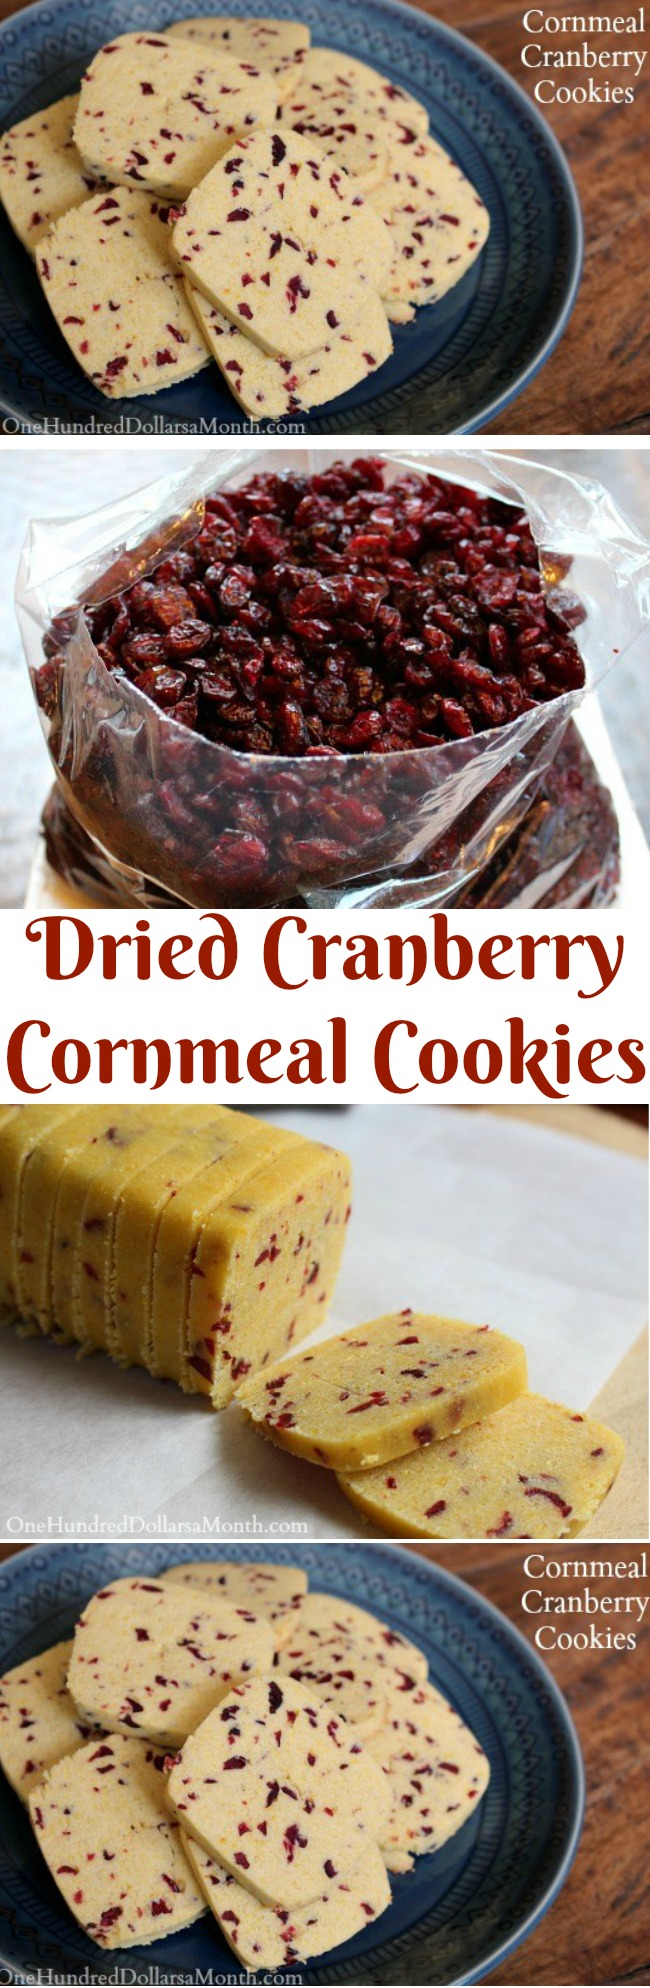 Cornmeal-Cranberry Cookies